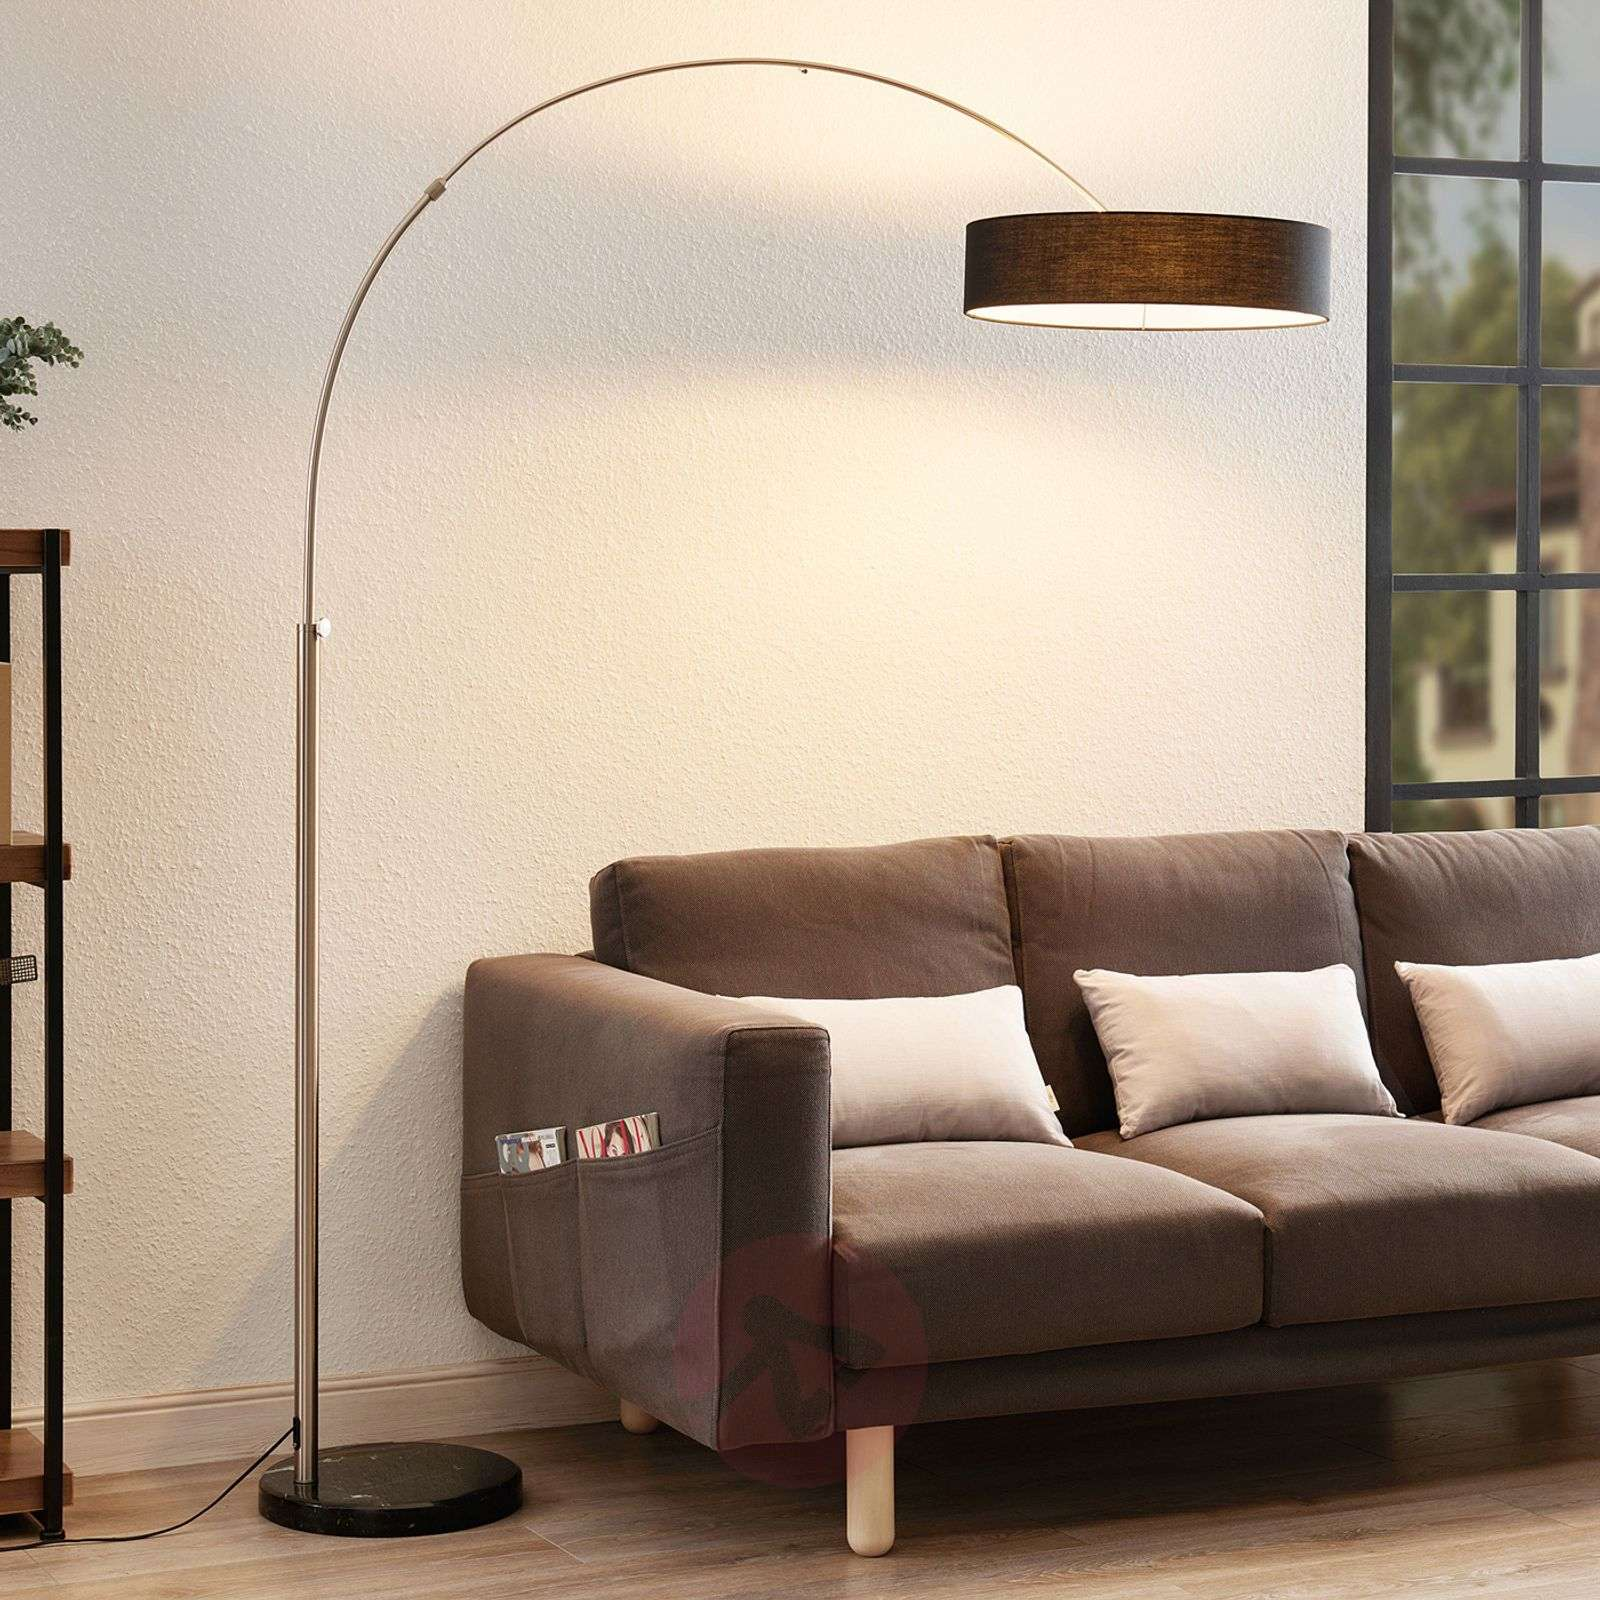 Shing fabric floor lamp with a black lampshade-9620141-09